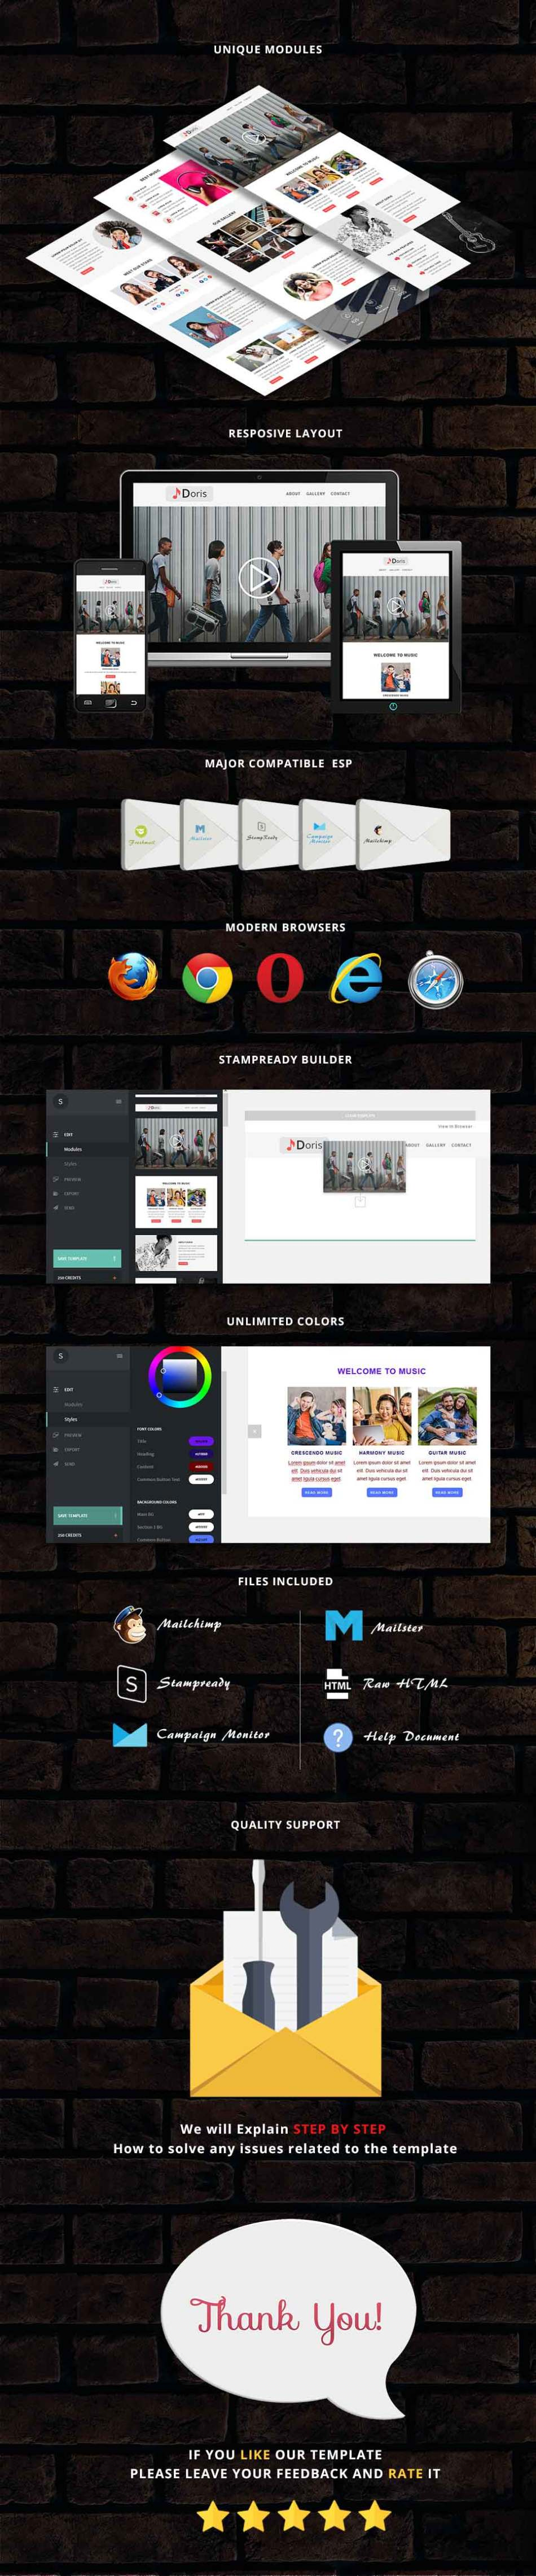 Doris - Responsive Email Template + Stampready Builder